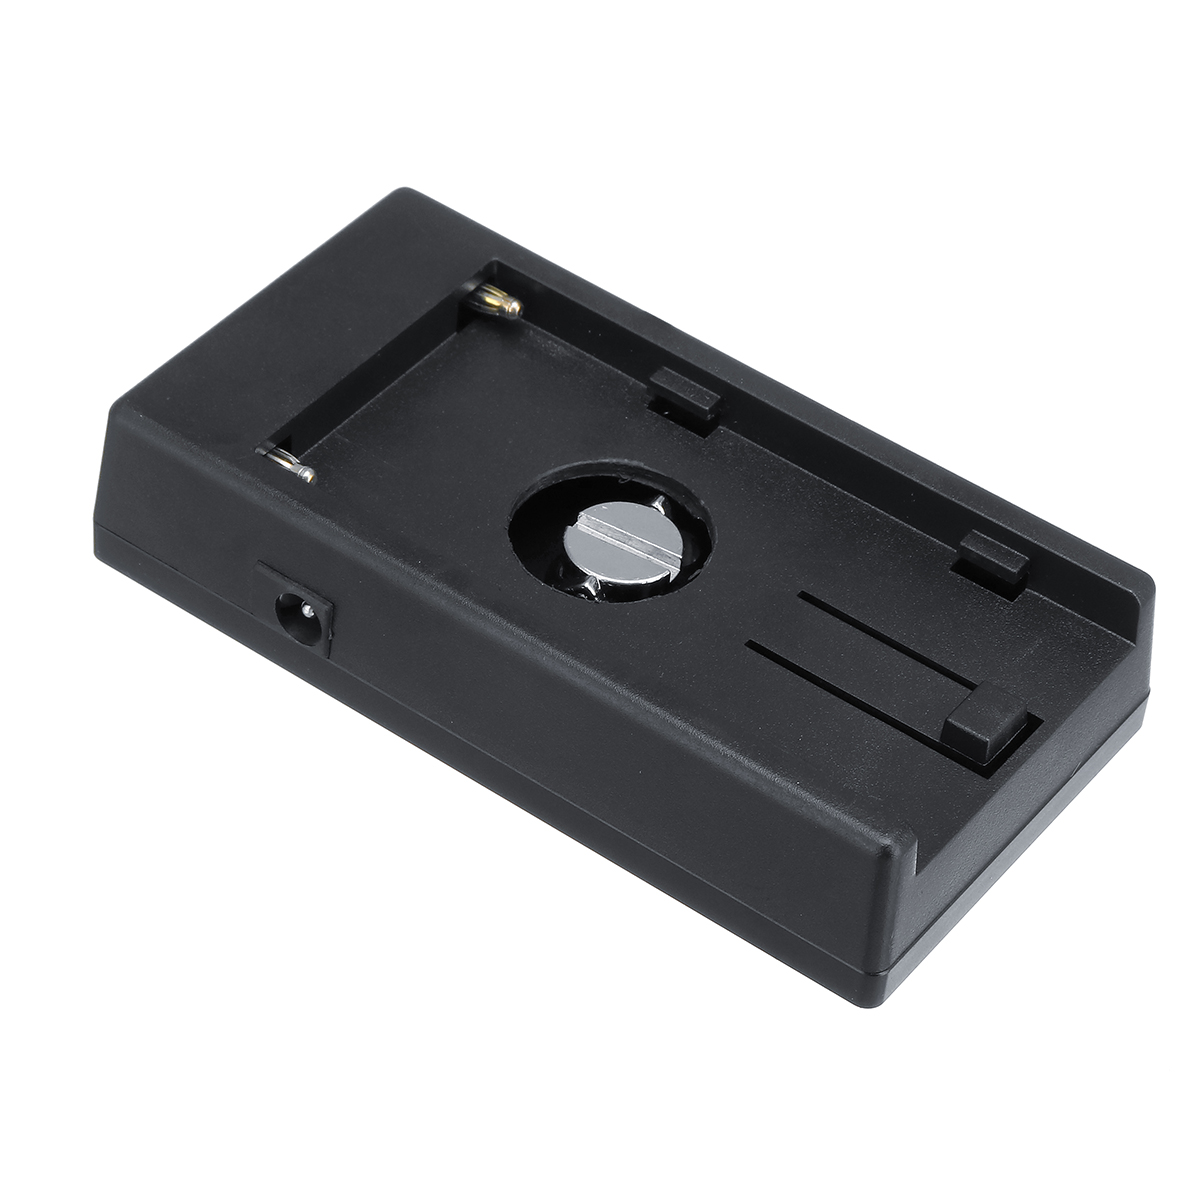 Camera Battery Power Supply System Plate Aviation Connector for BMPCC 4K F-970 F970 Camera